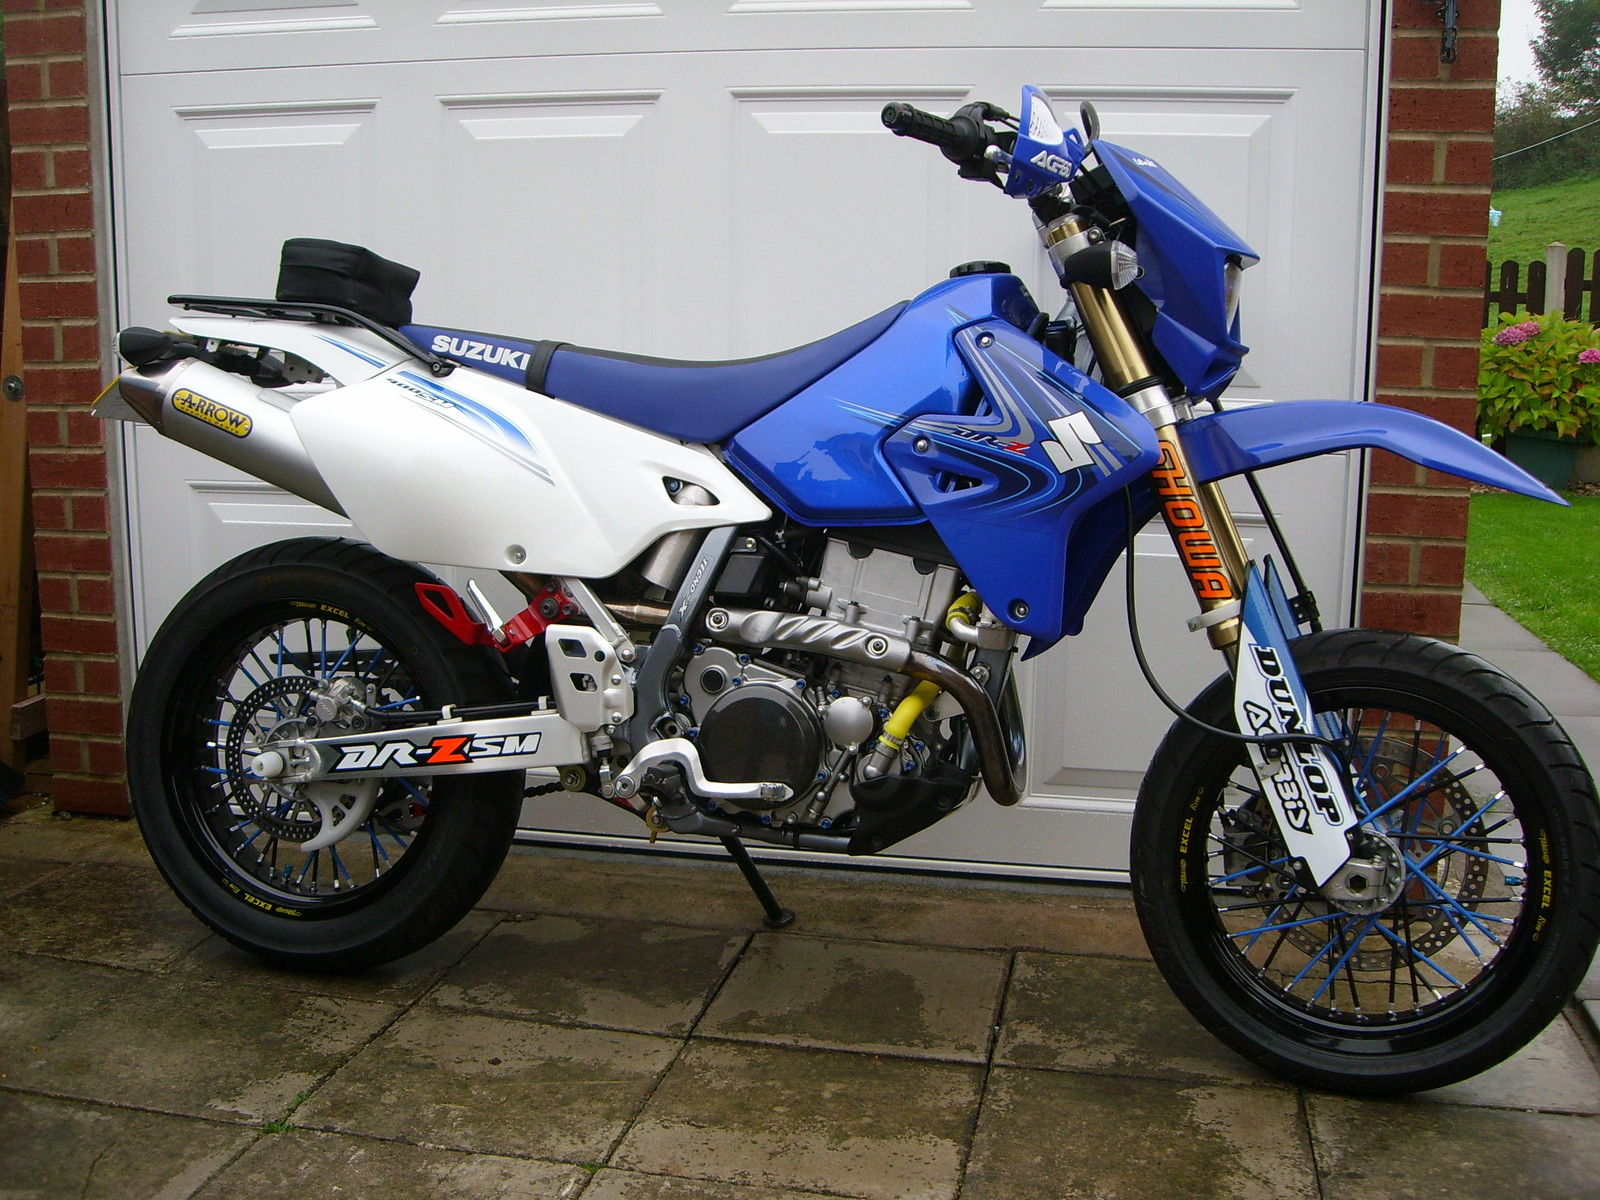 suzuki drz 400 supermoto for sale autos post. Black Bedroom Furniture Sets. Home Design Ideas